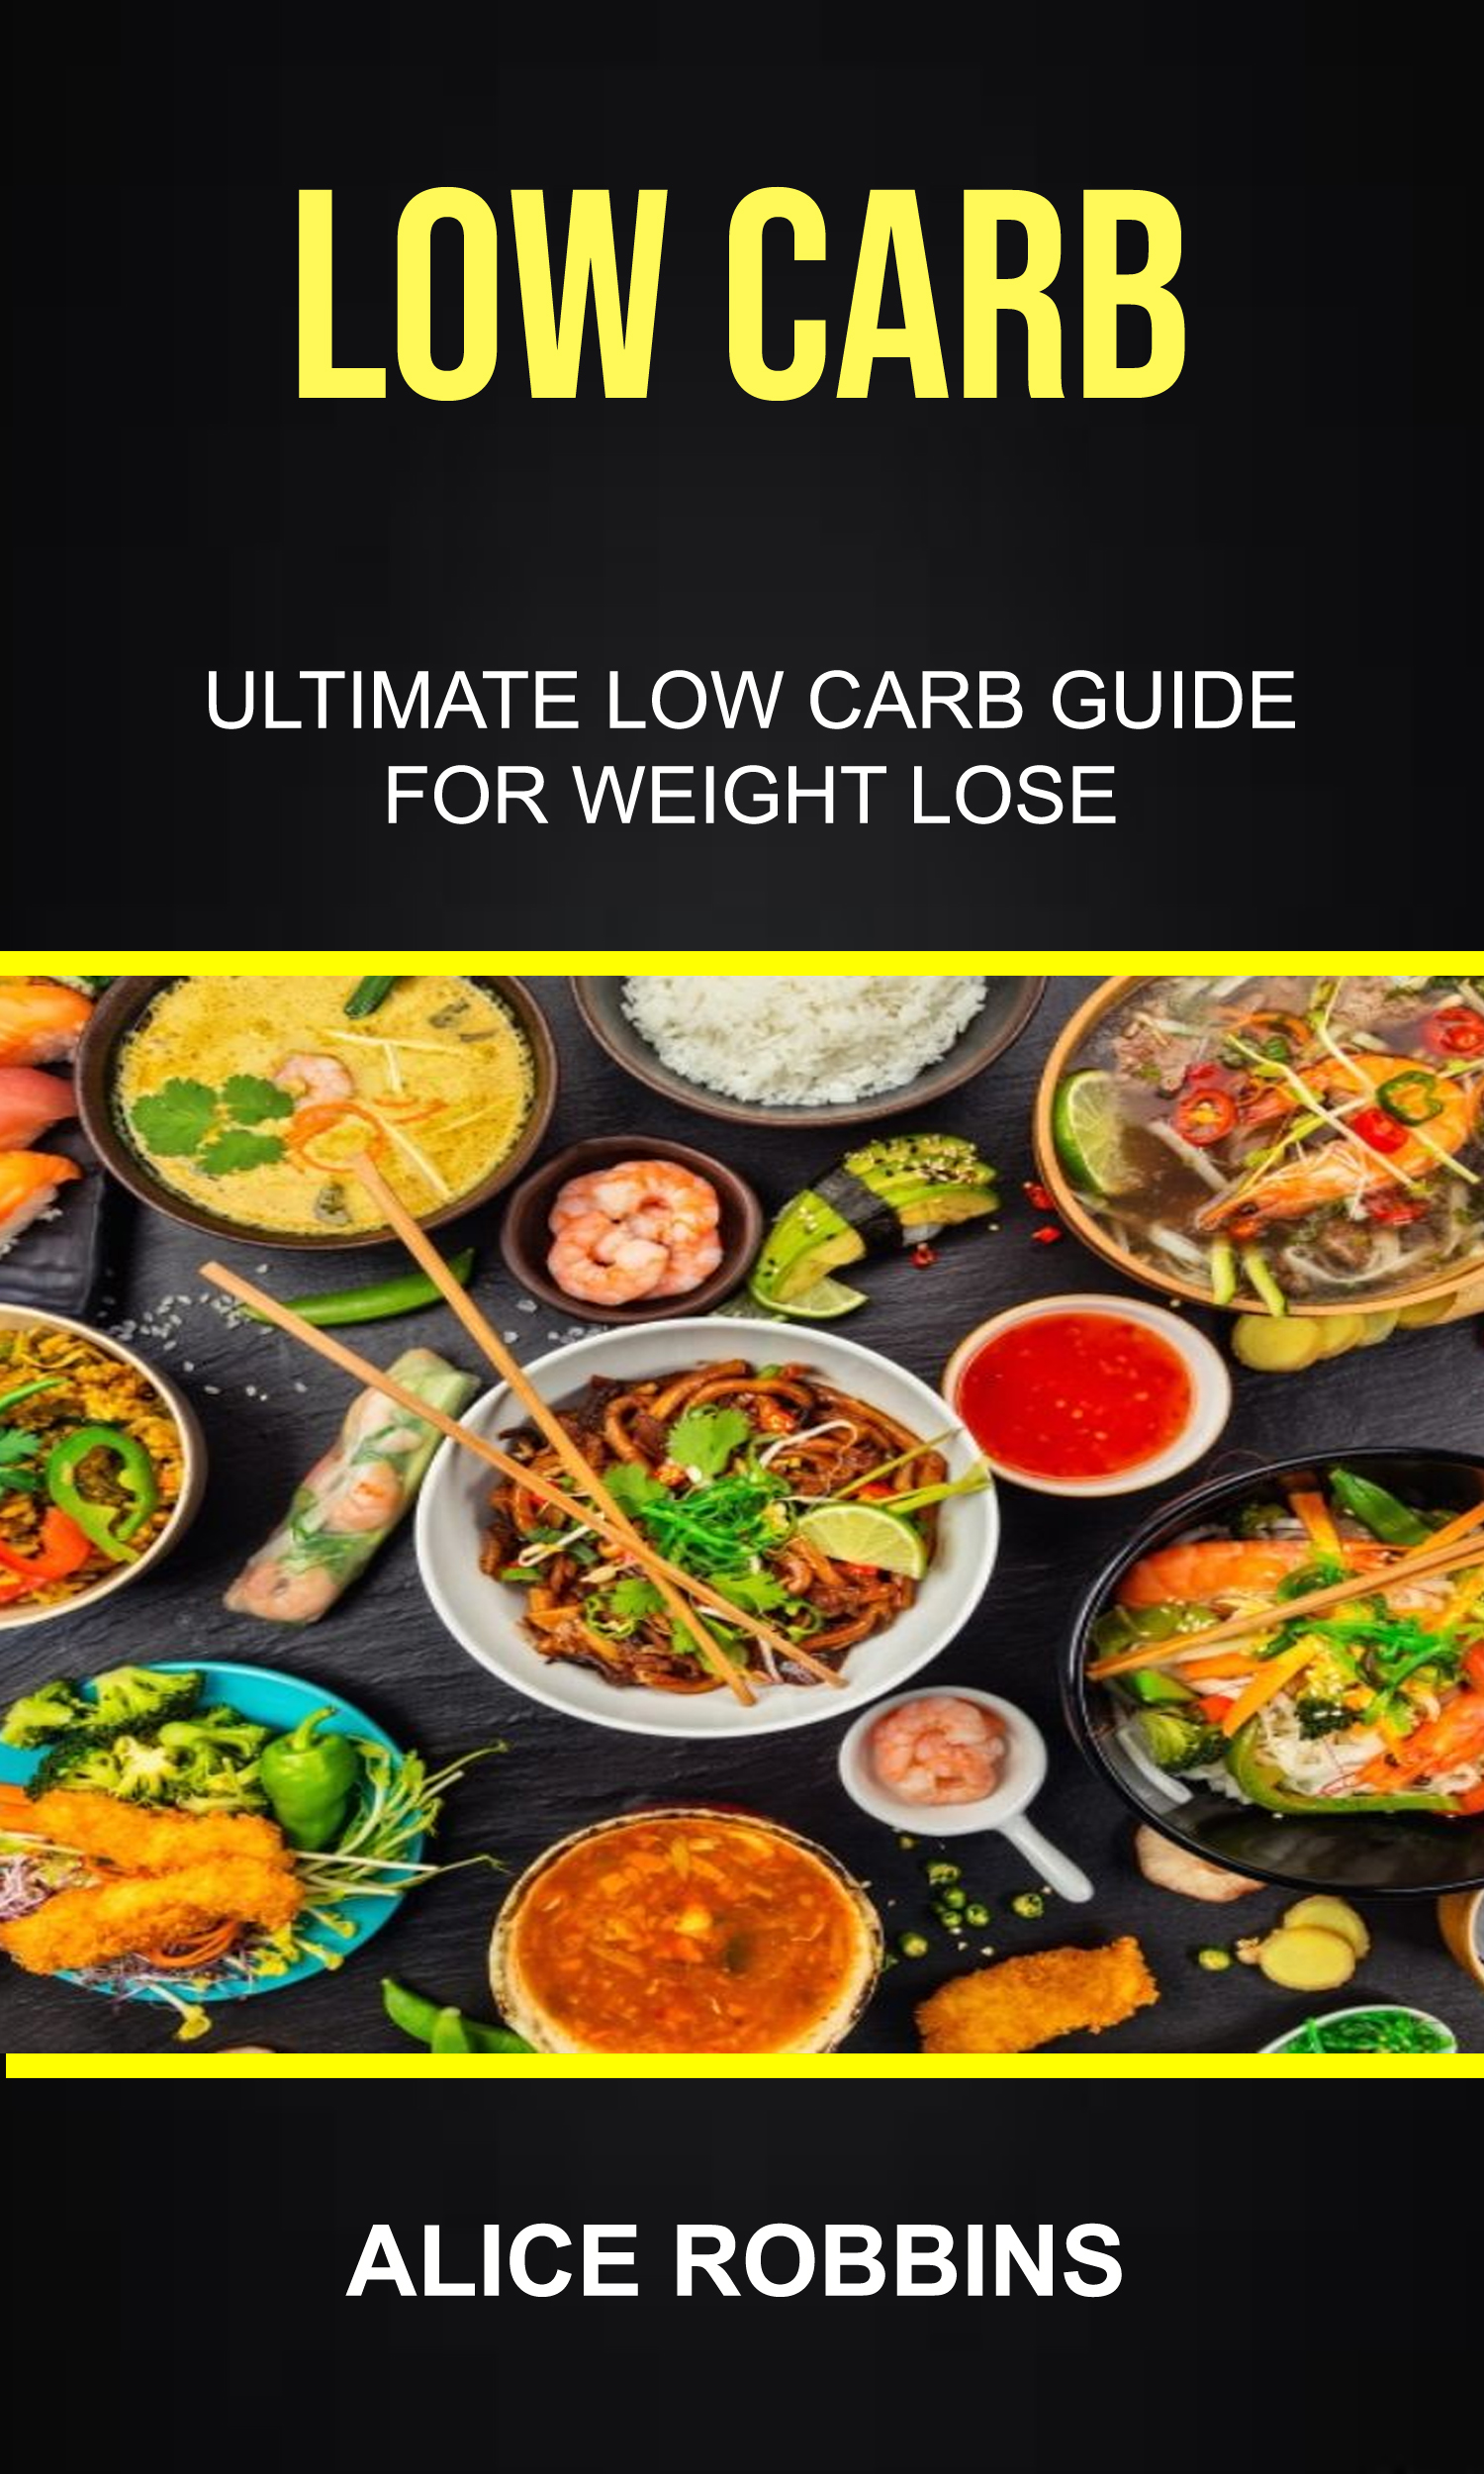 Low carb: ultimate low carb guide for weight lose